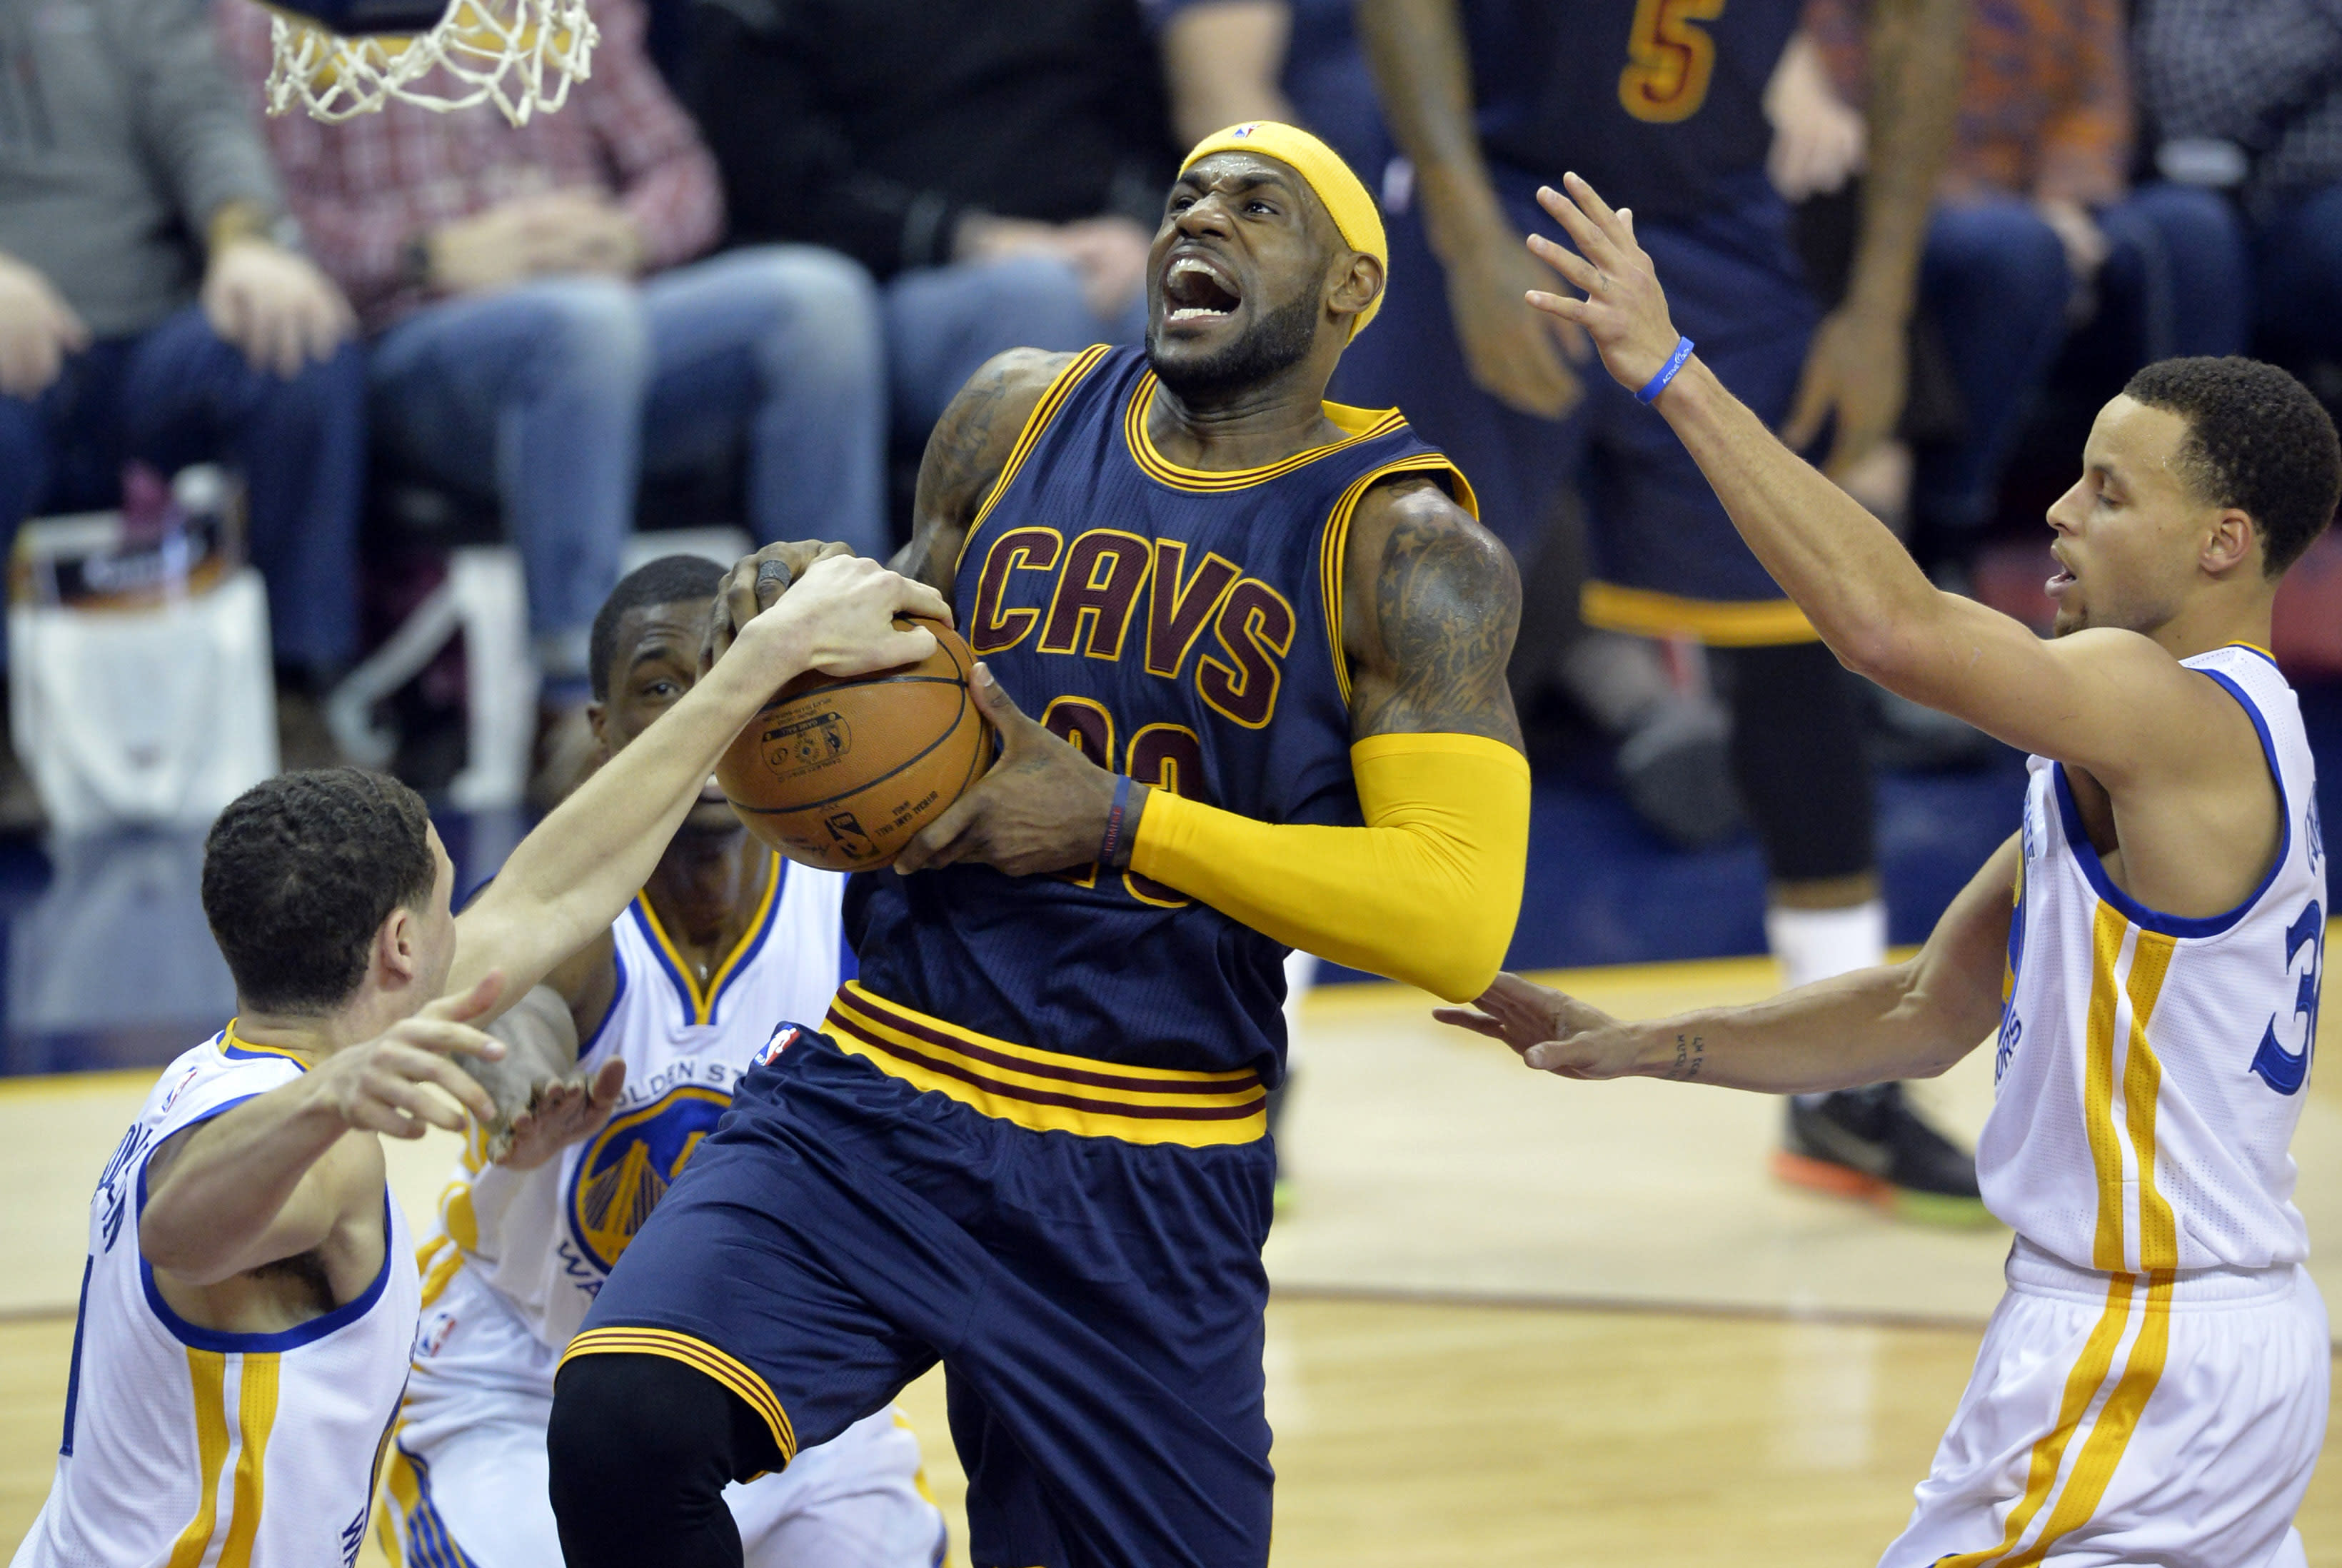 LeBron dominates with season-high 42 points, Cavs handle Warriors